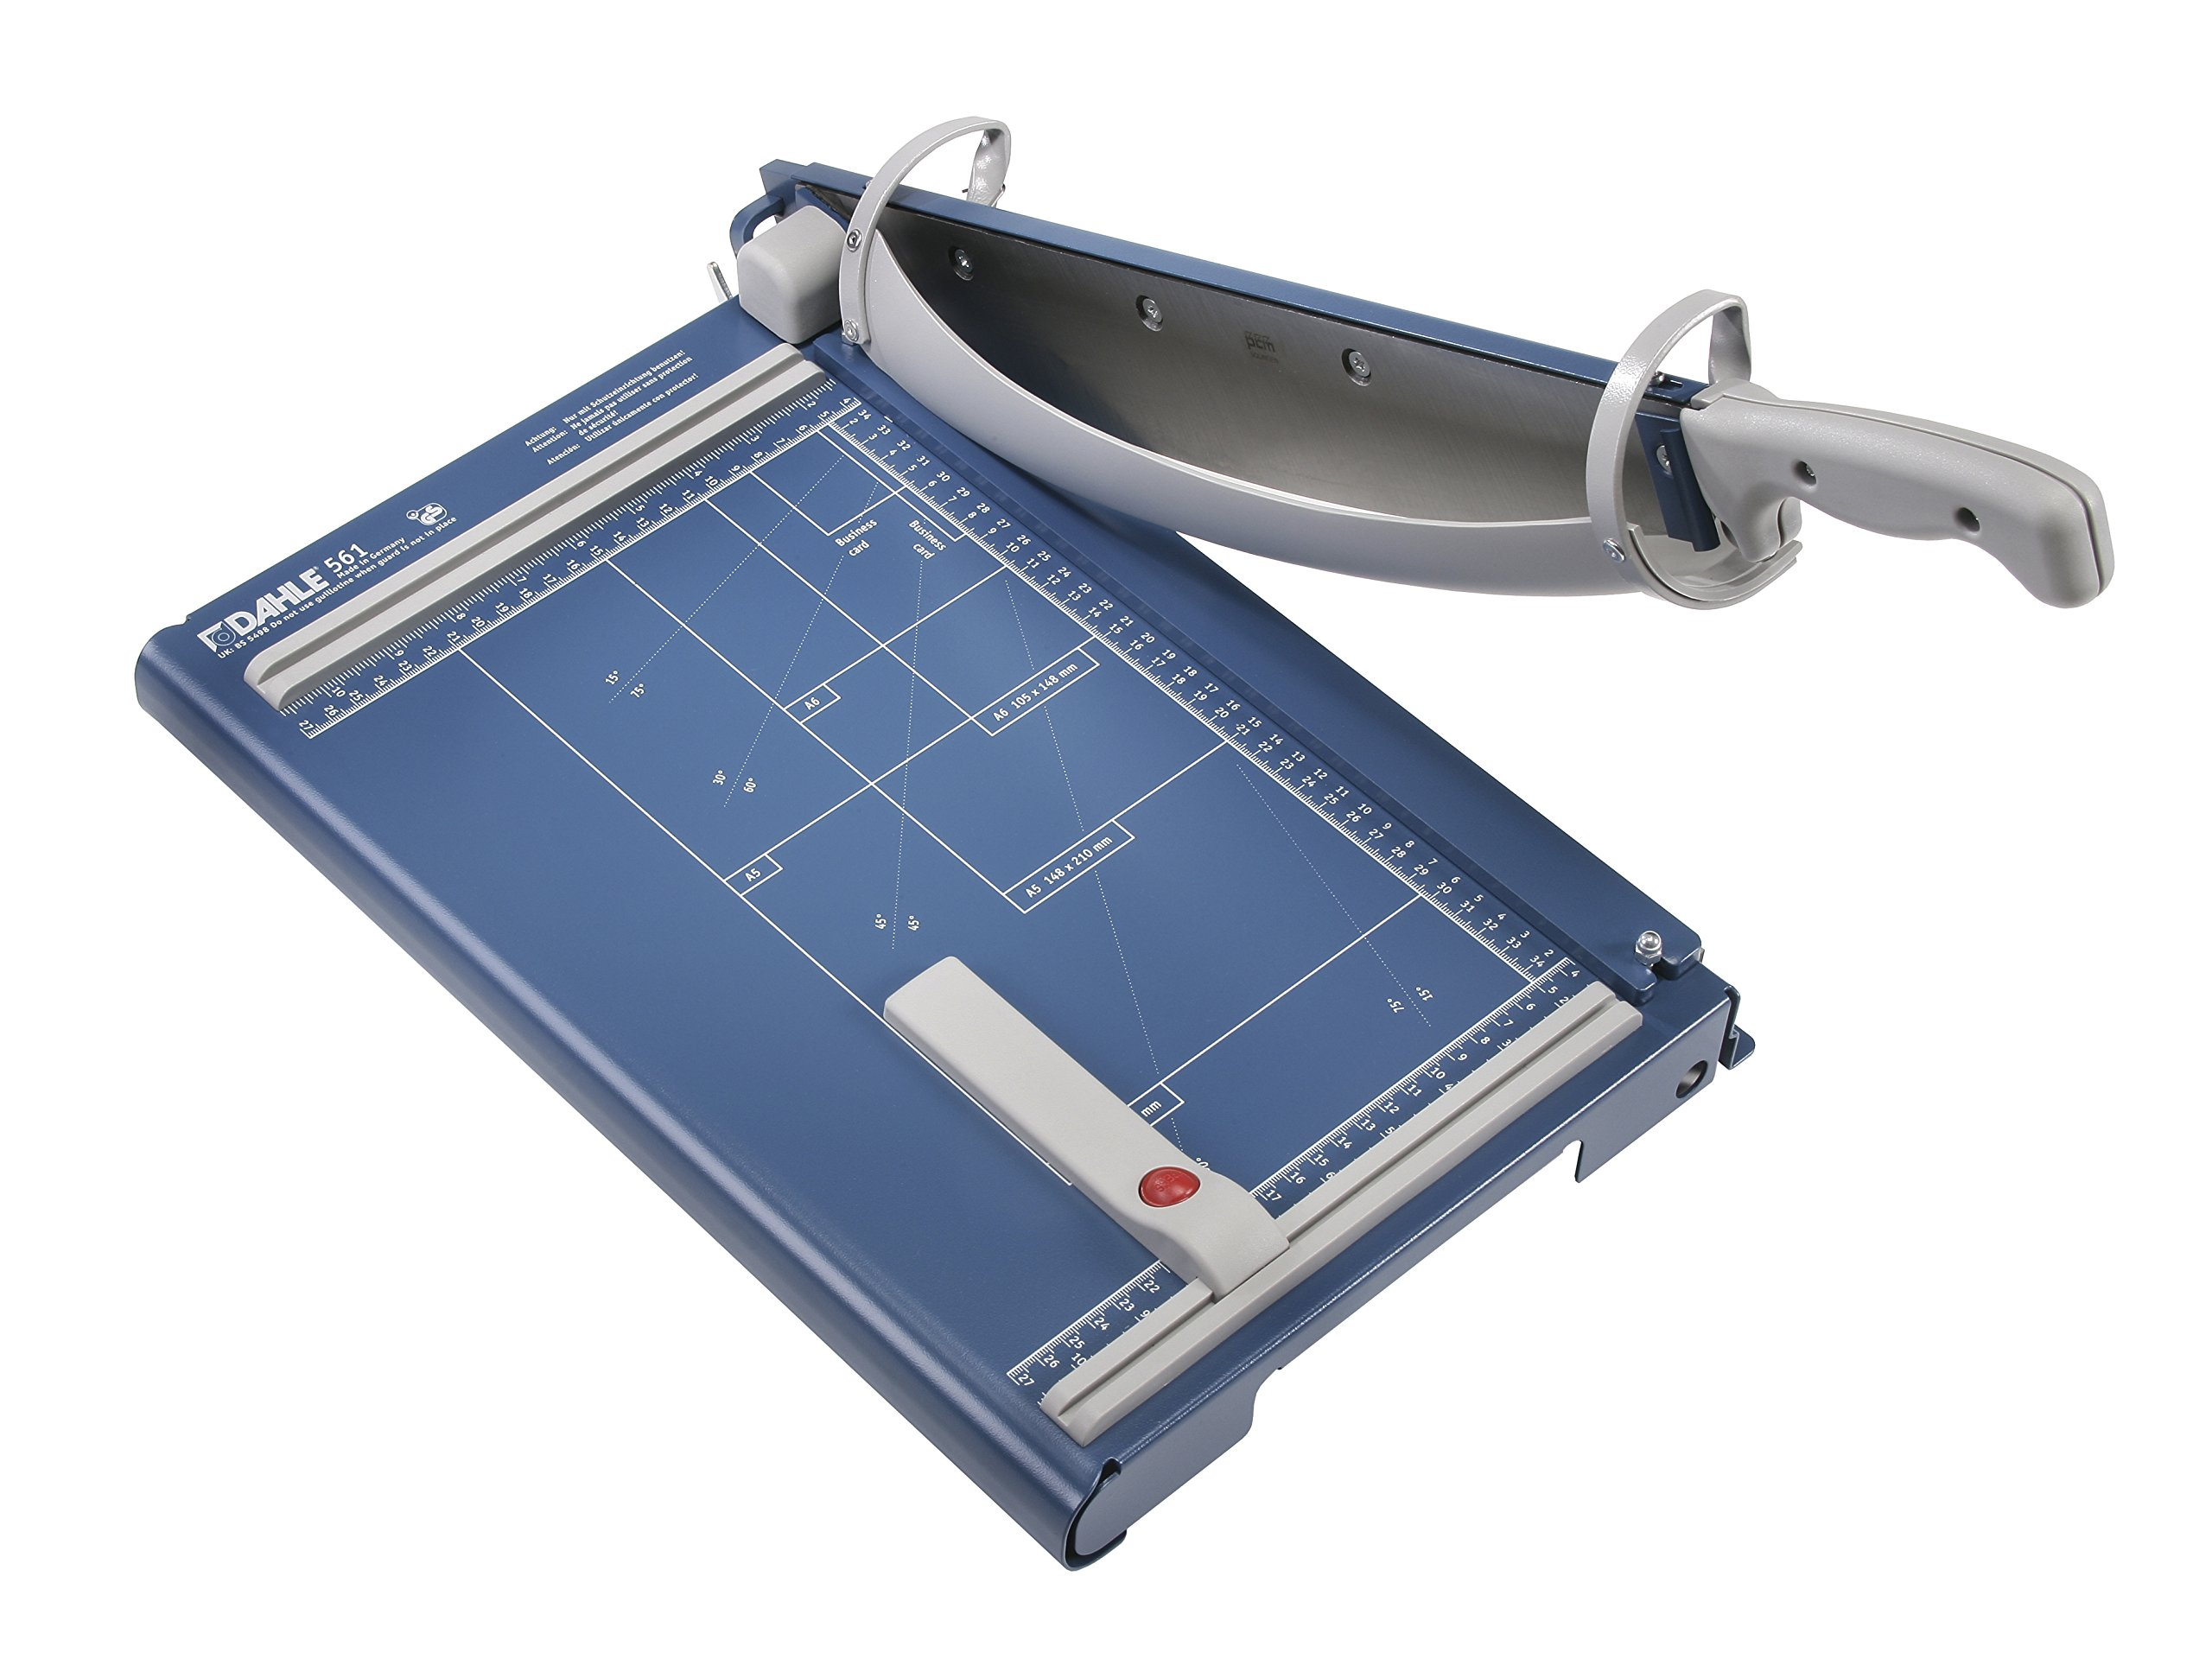 Dahle 561 Premium Guillotine Trimmer, 14-1/8'' Cut Length, 35 Sheet Capacity, Self-Sharpening Blade, Automatic Clamp, w/Safety Guard